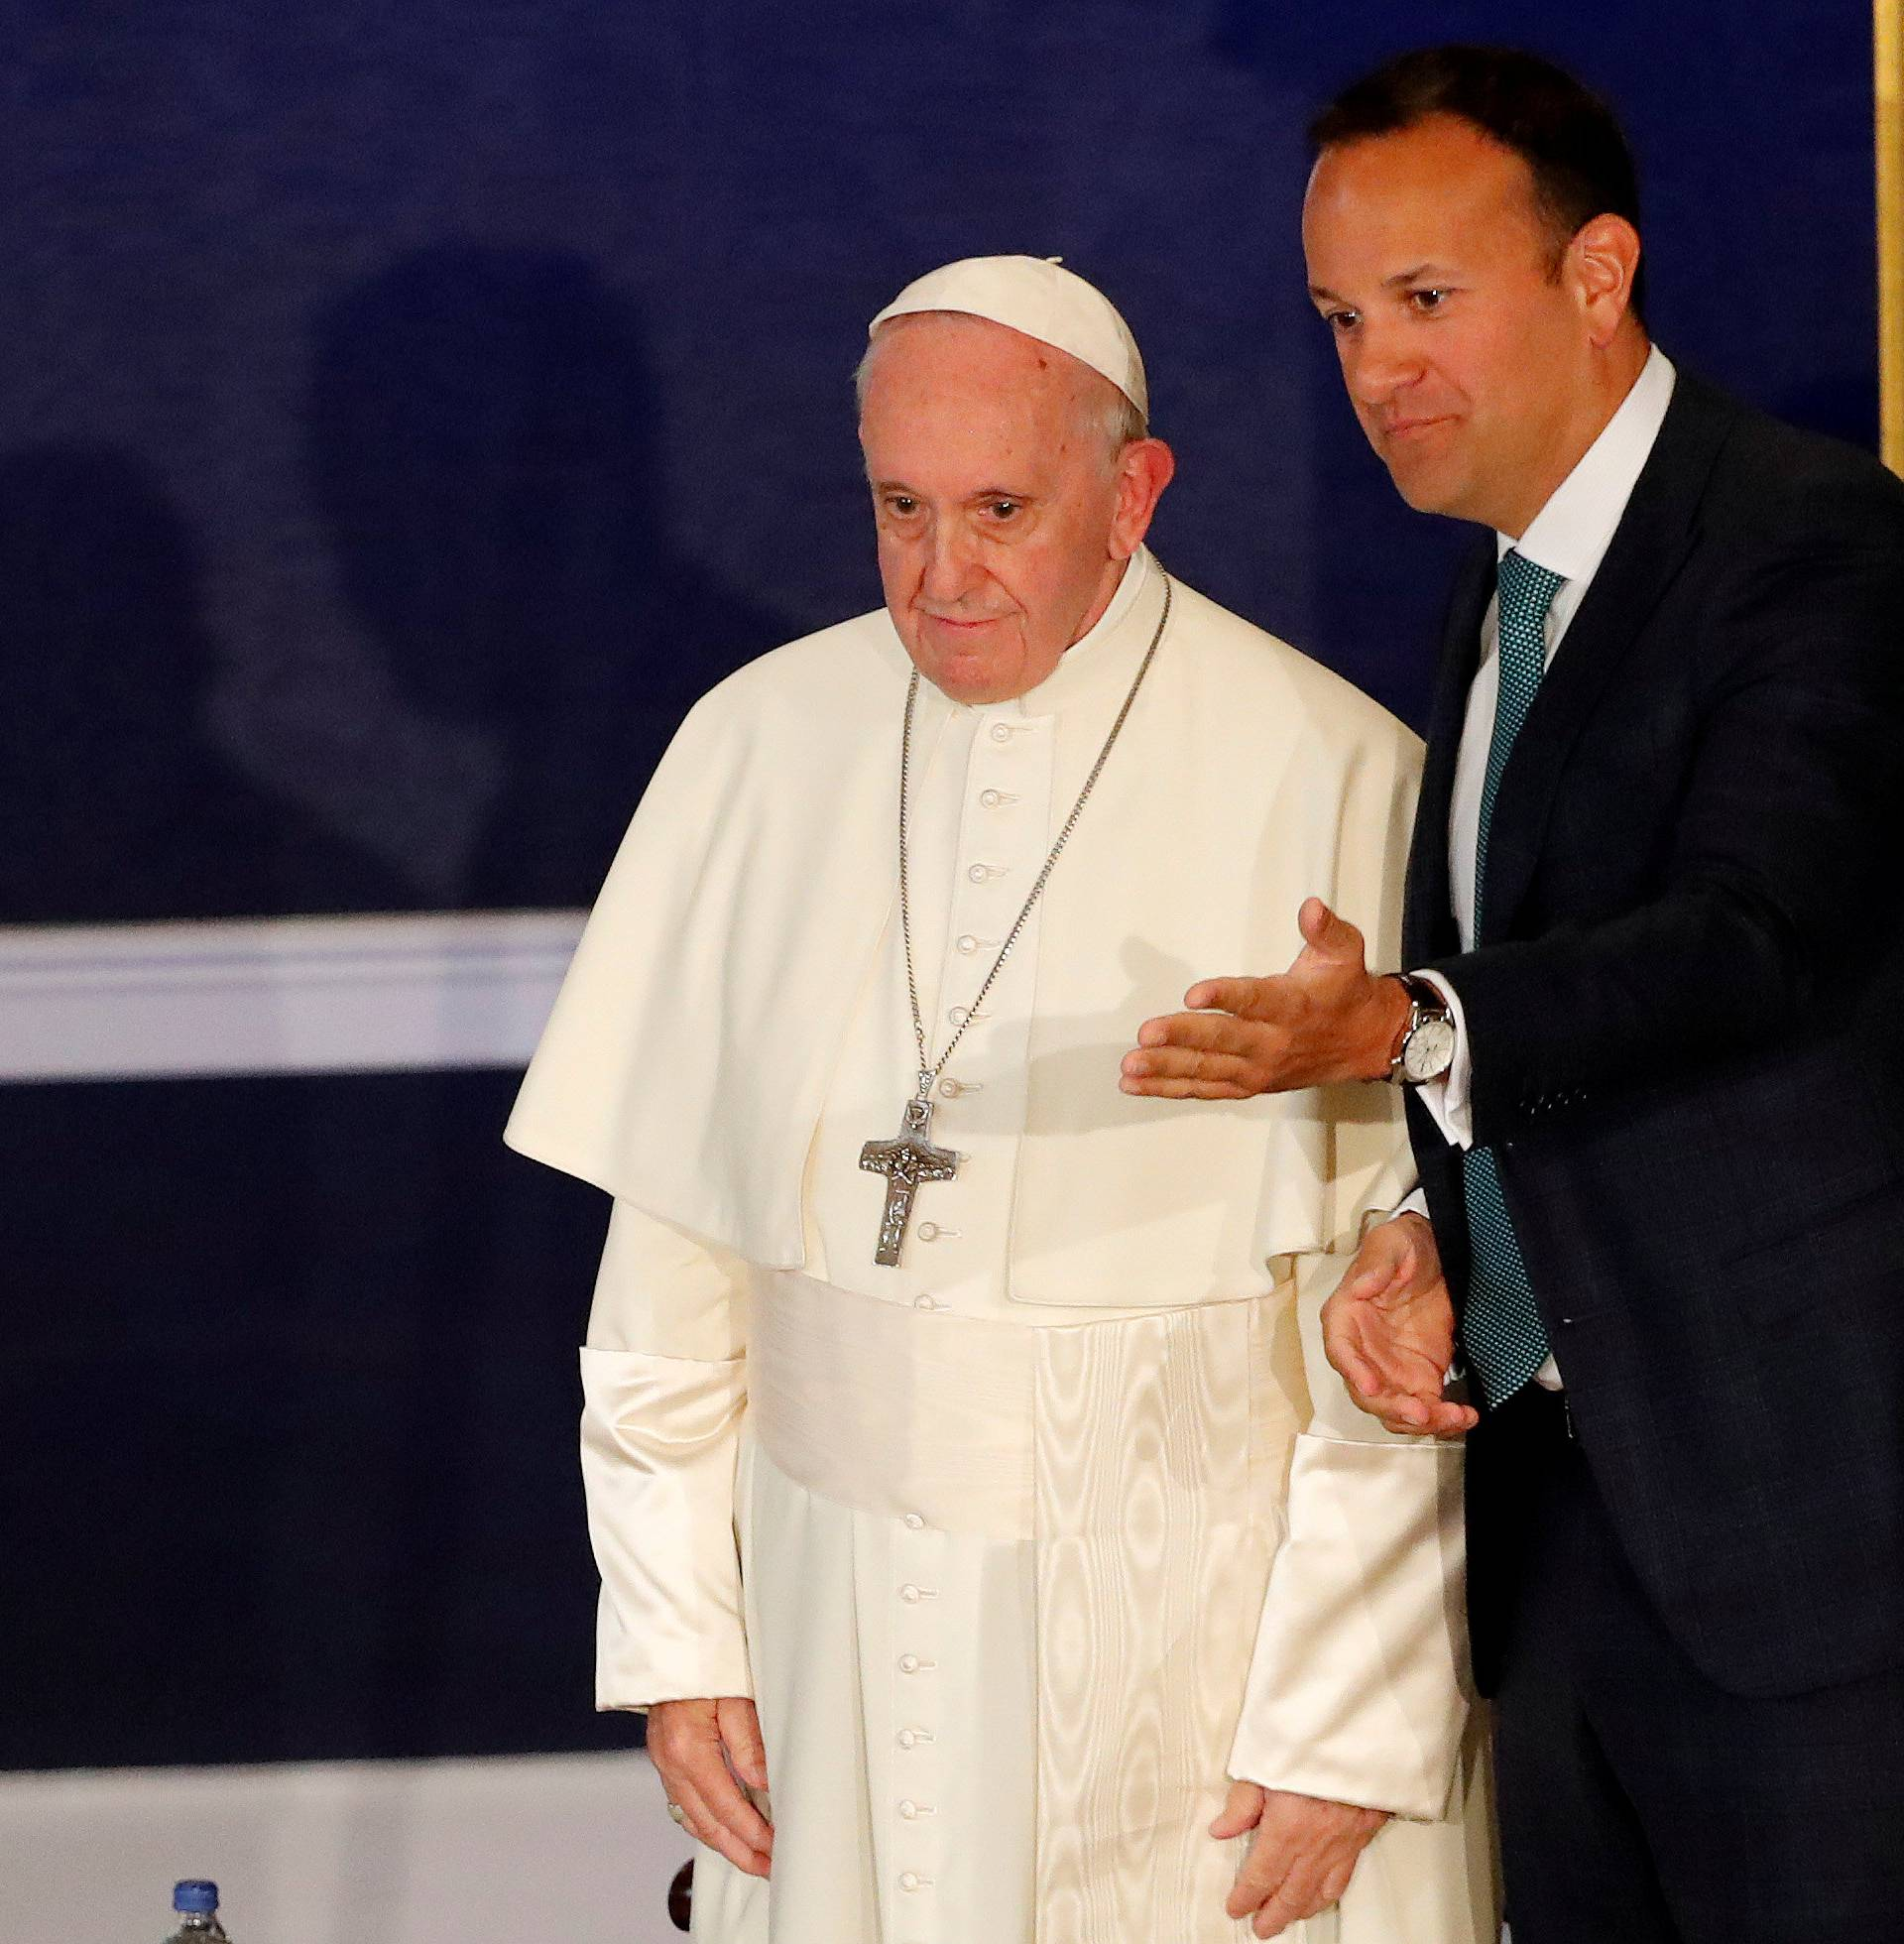 Pope Francis is welcomed by Taoiseach Leo Varadkar at Dublin Castle during his visit to Dublin